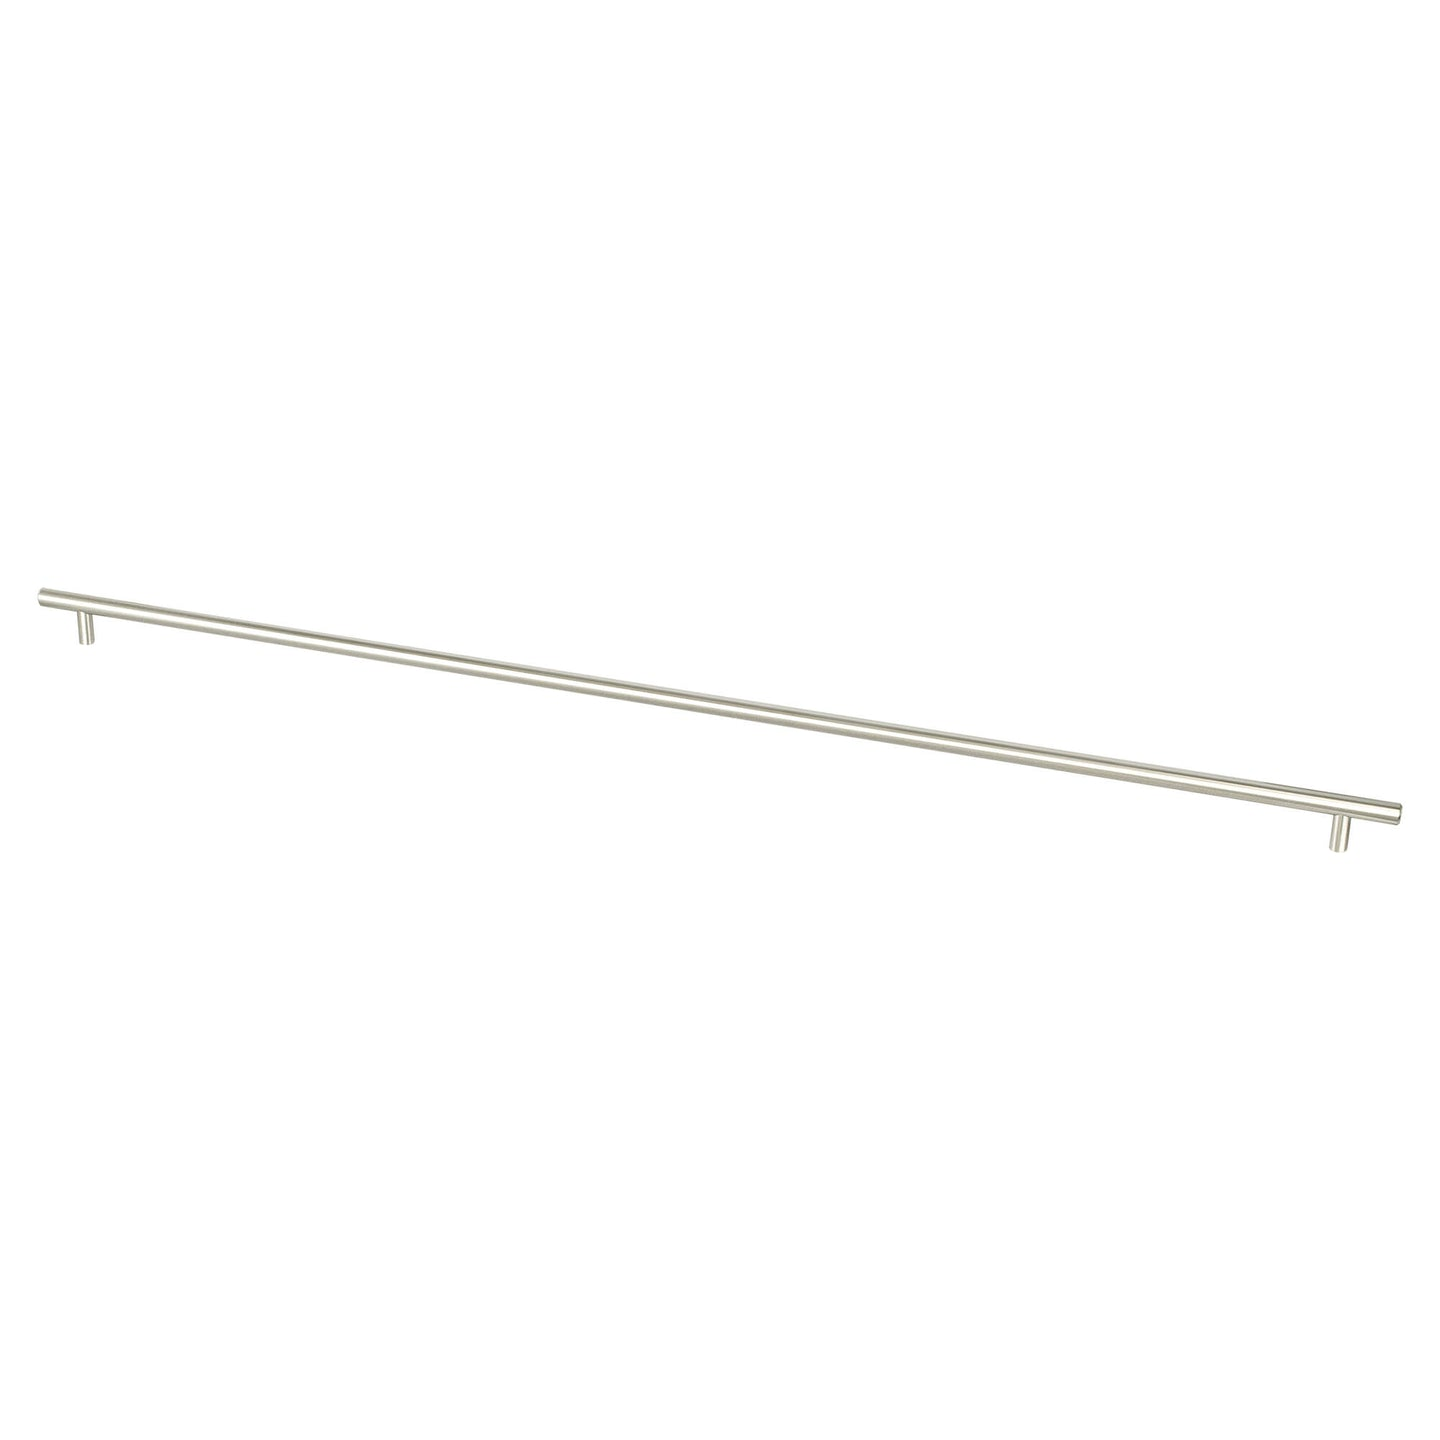 Tempo Appliance Pull 768MM C/C Brushed Nickel